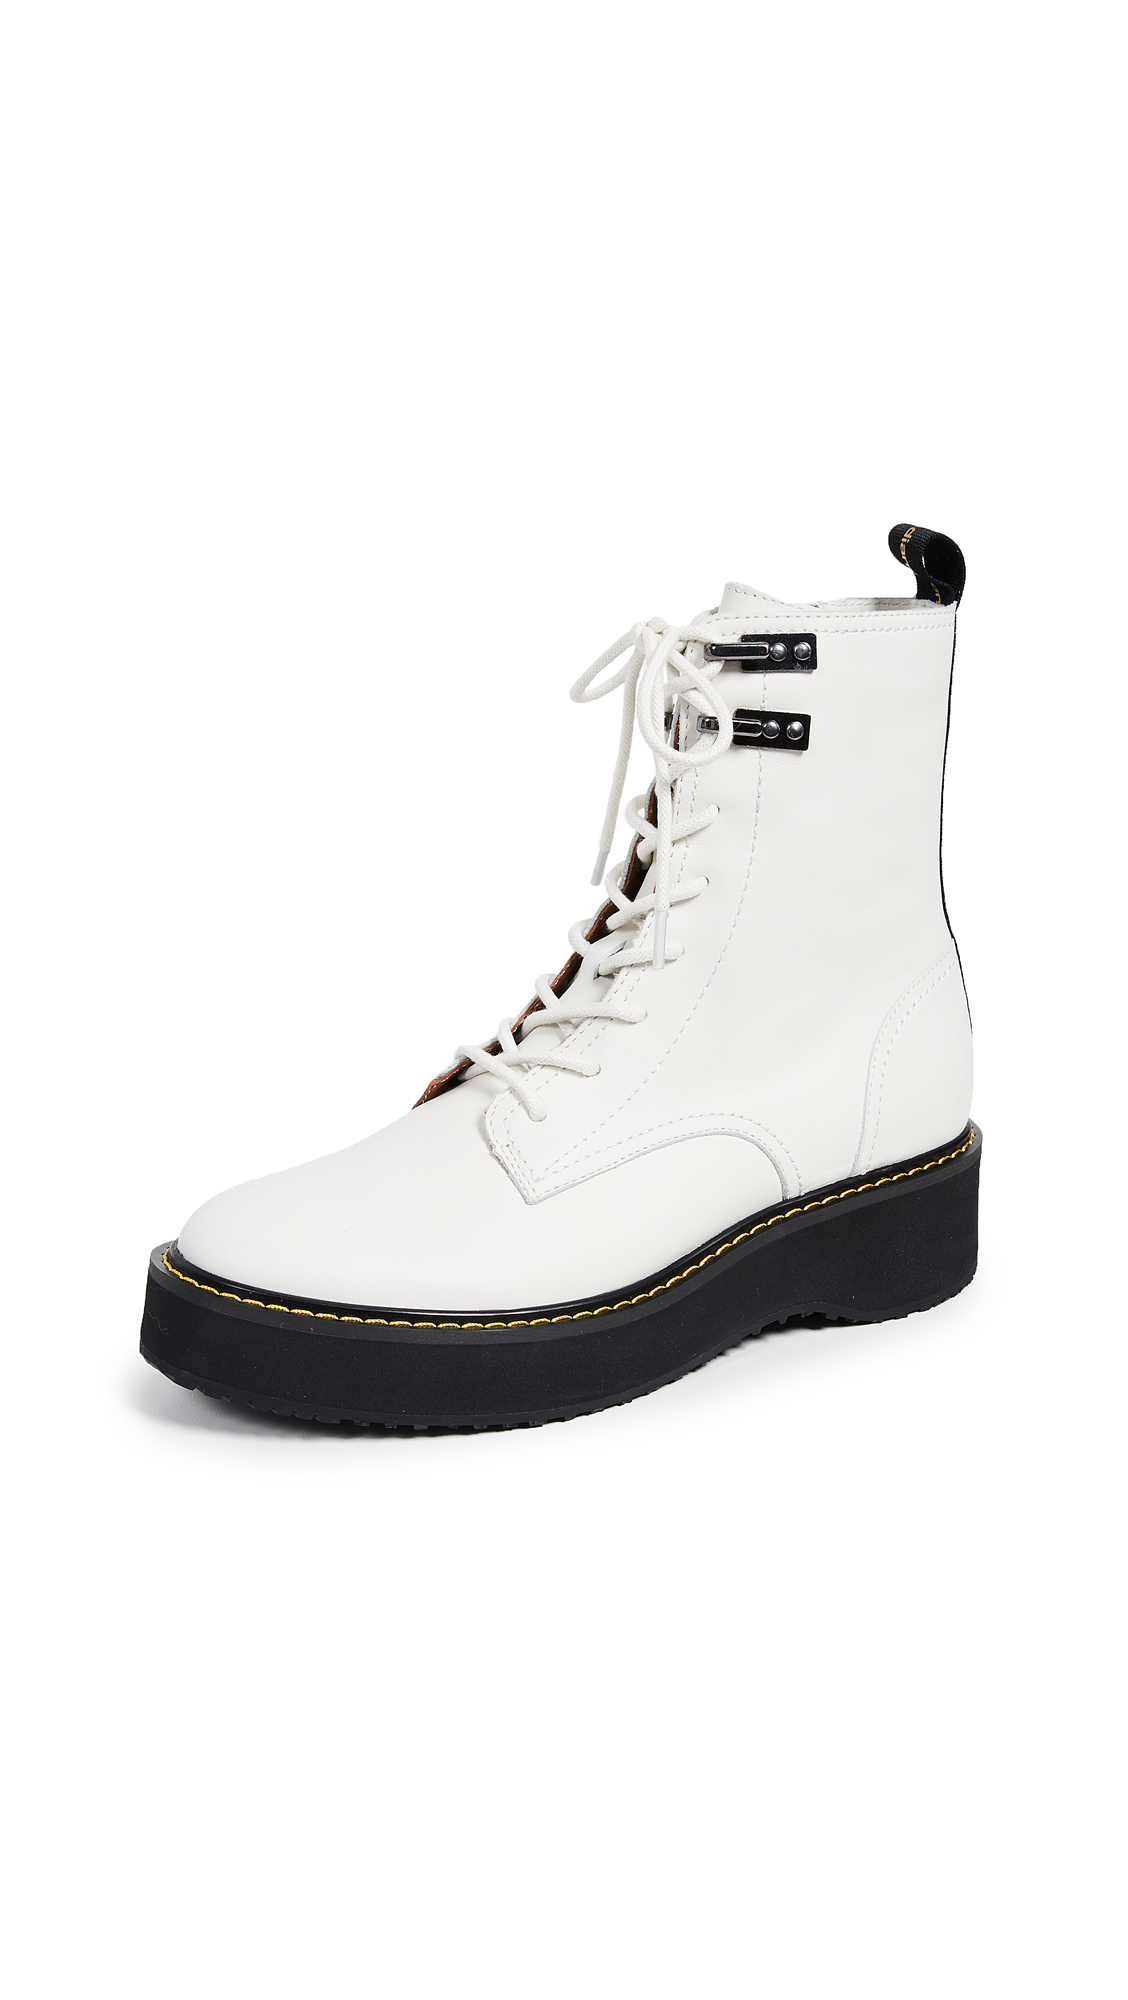 Diane von Furstenberg In Charge Boots - White